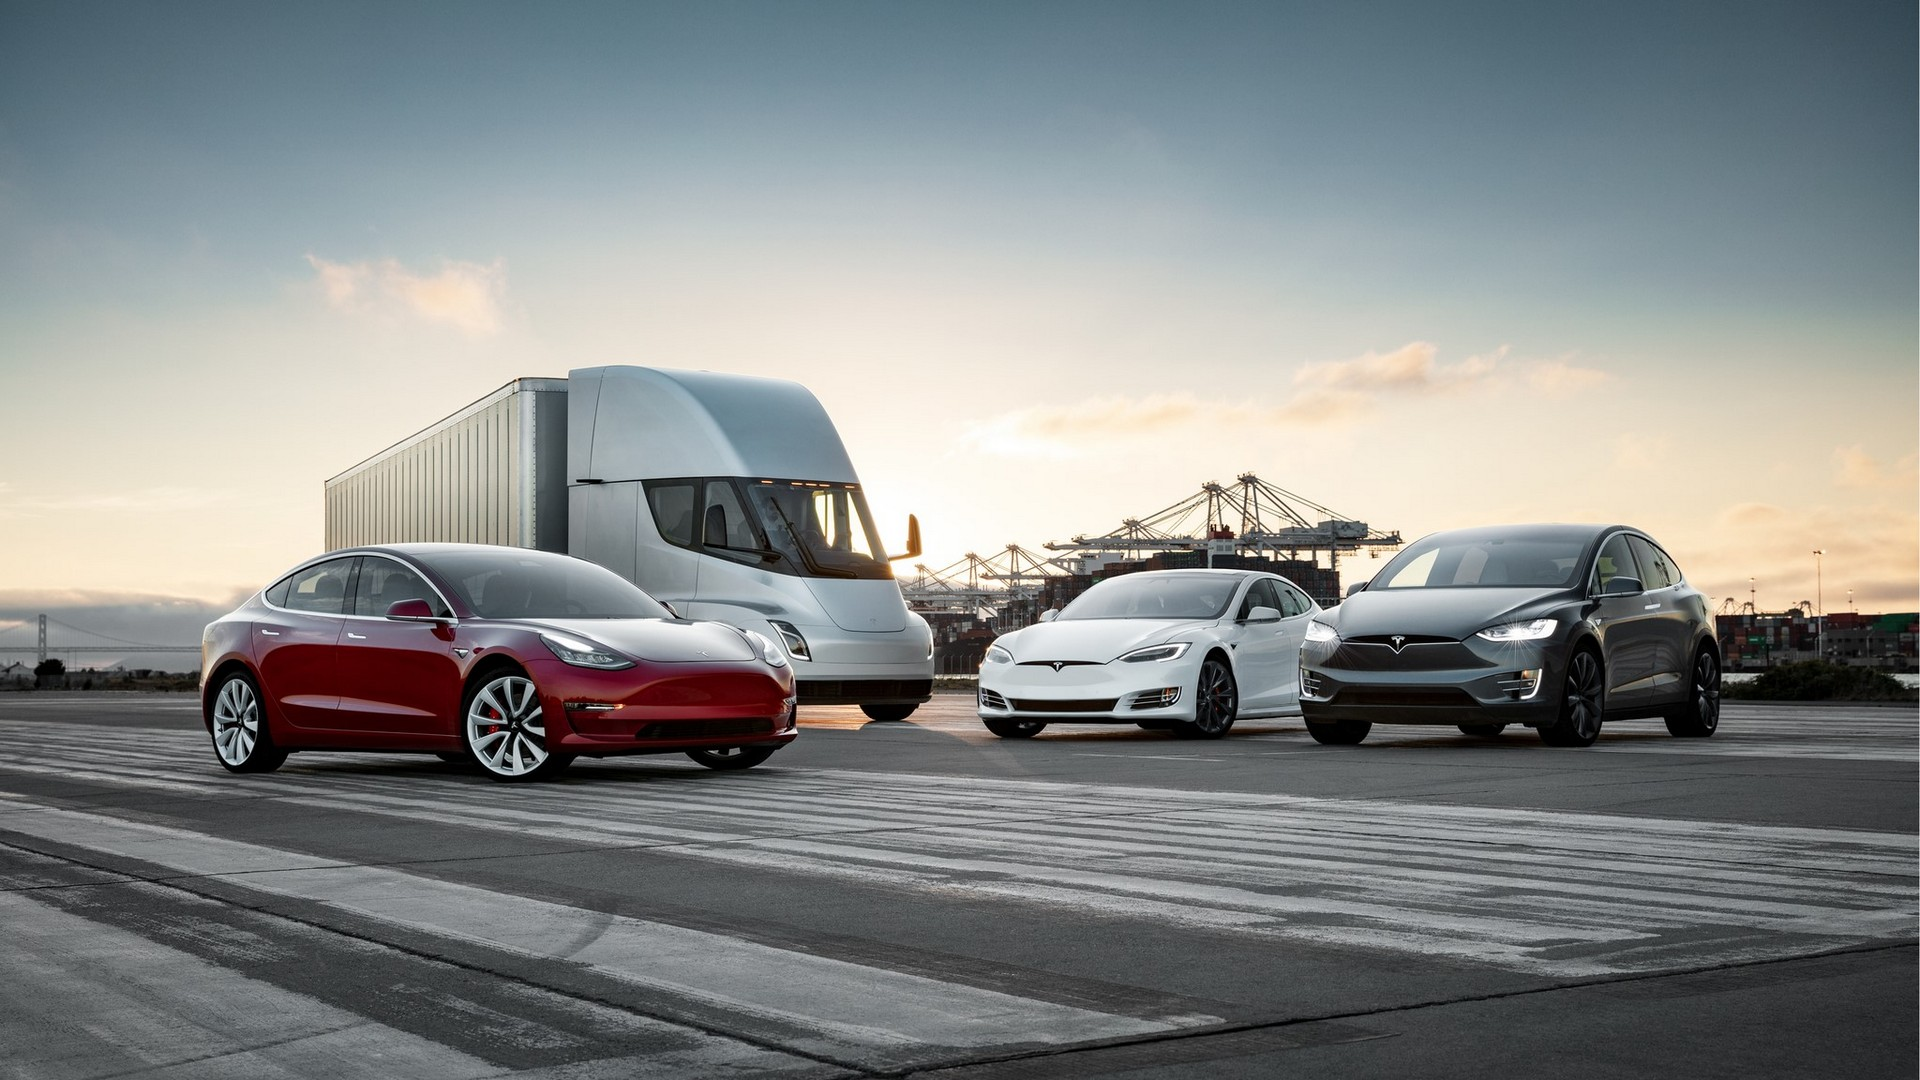 What To Expect From Tesla In 2019 Model Y Model S X Refresh